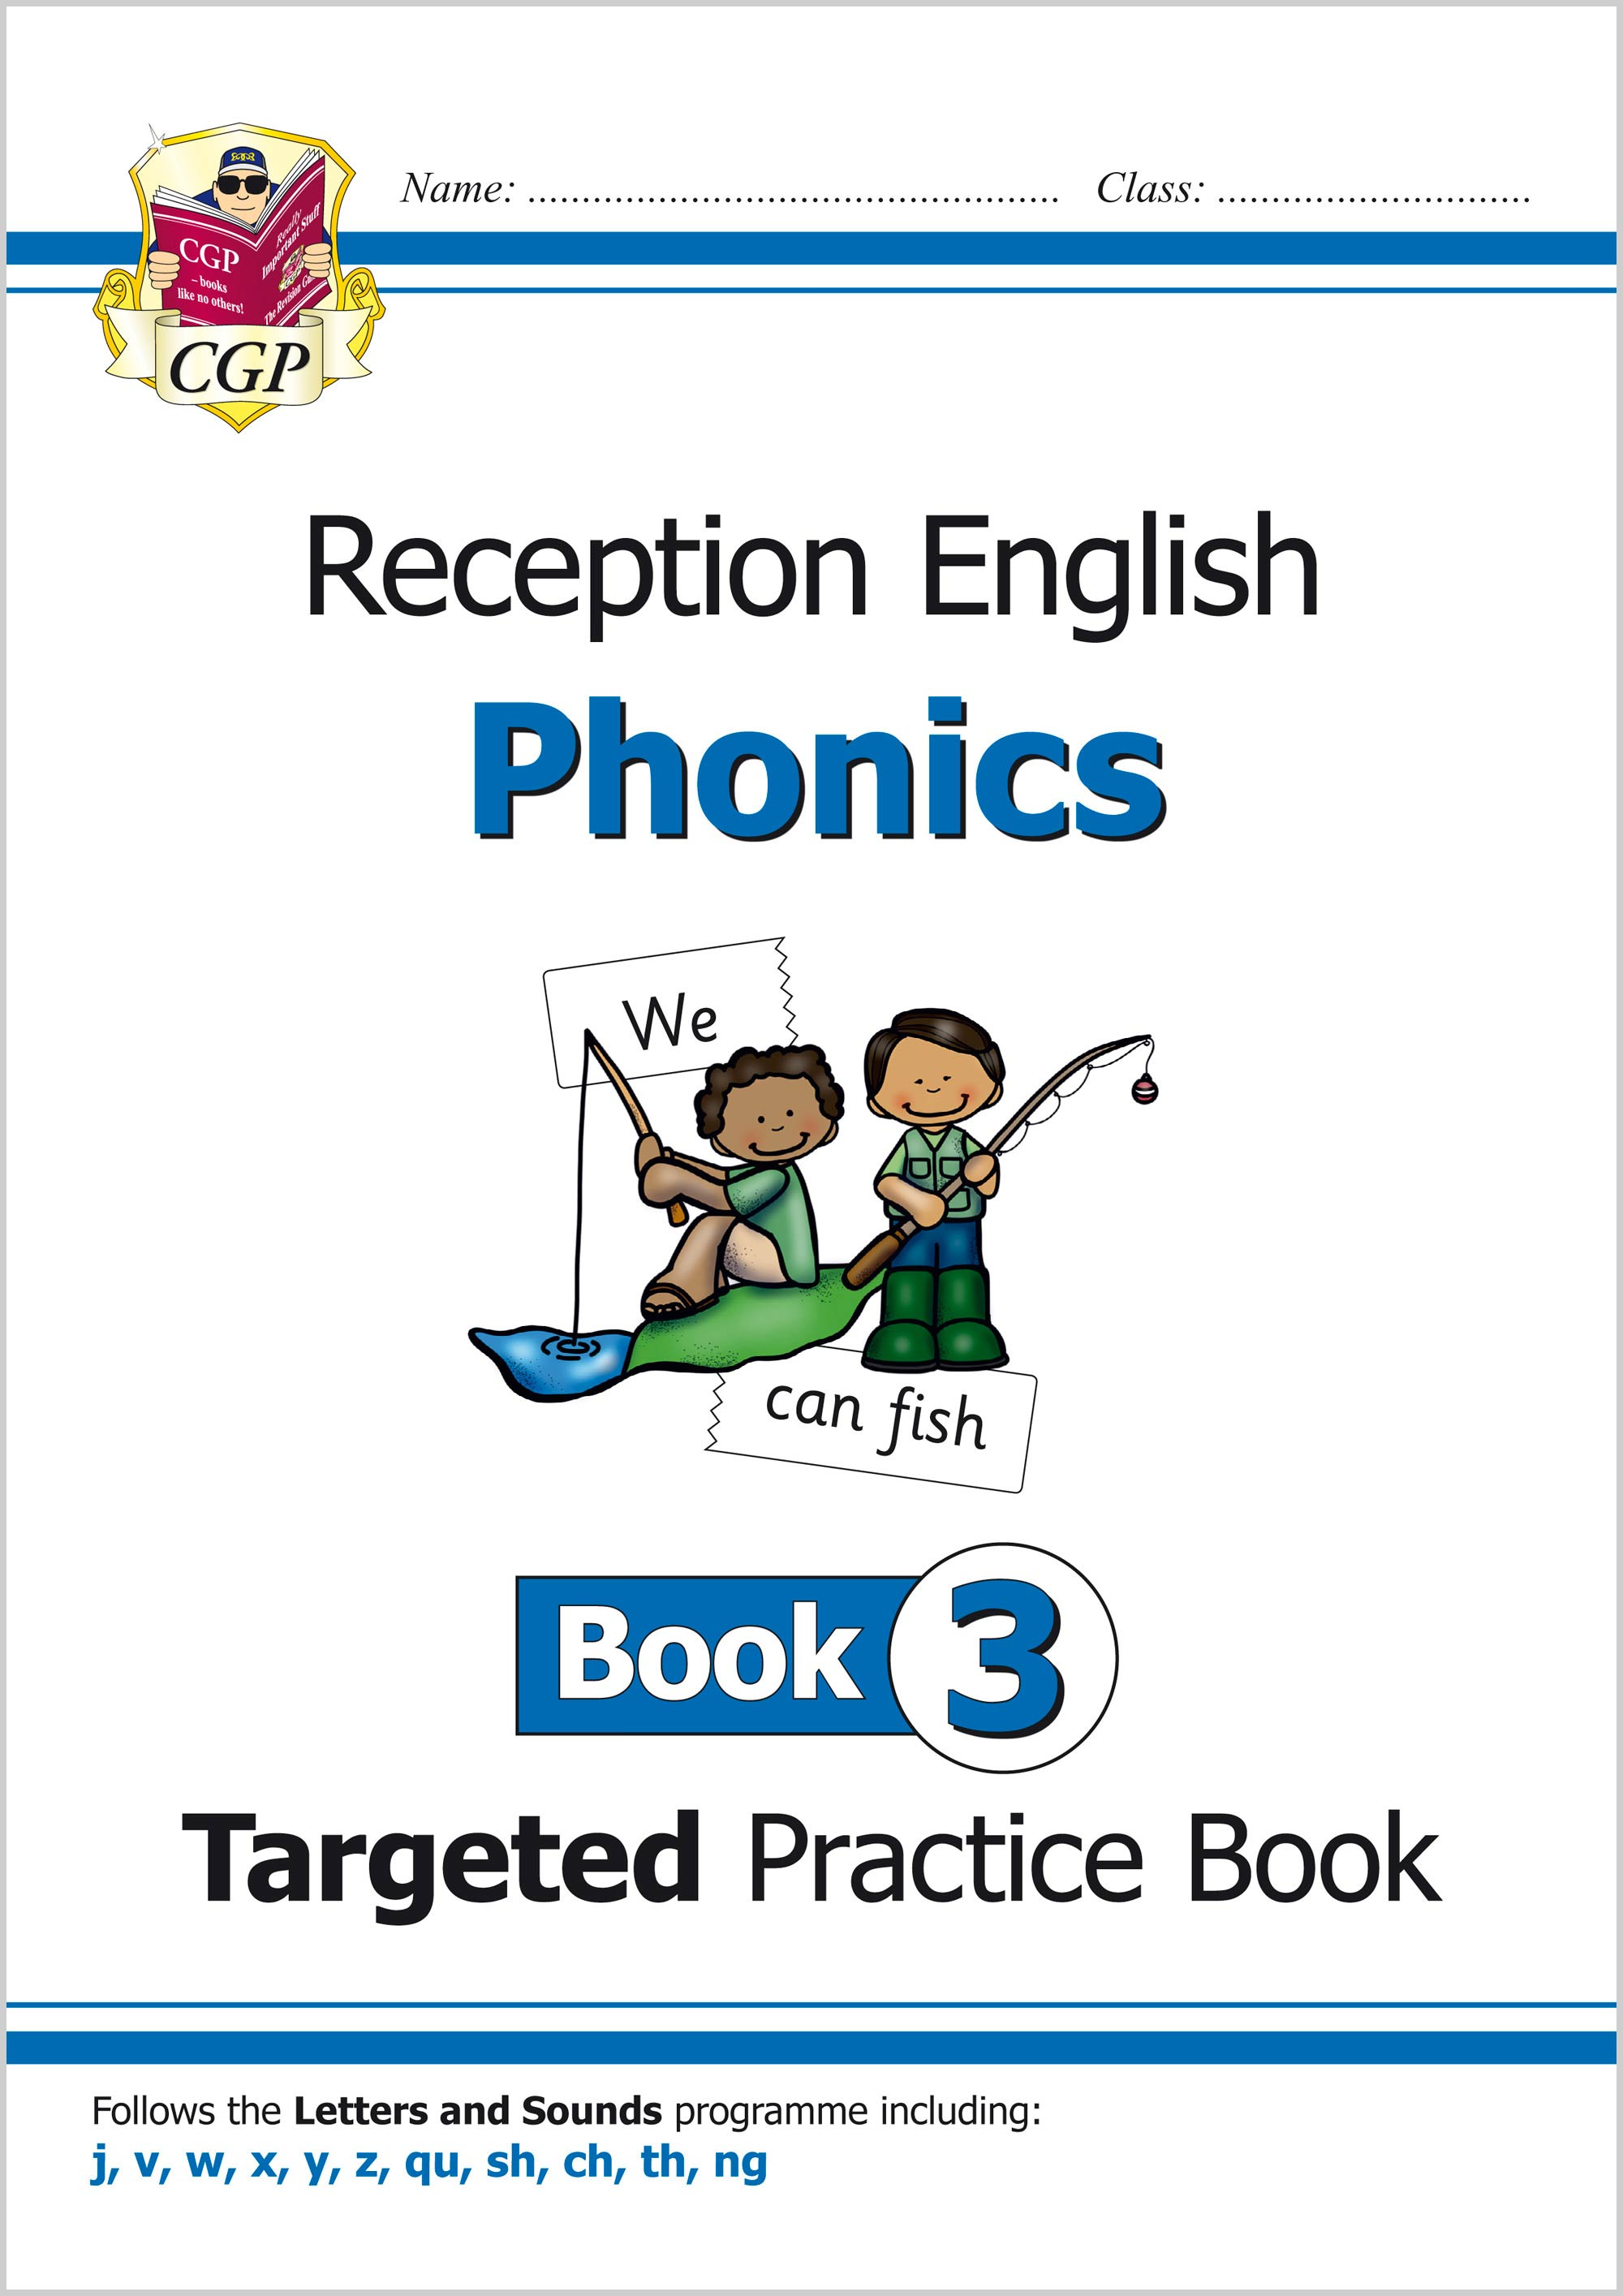 EROW311 - English Targeted Practice Book: Phonics - Reception Book 3